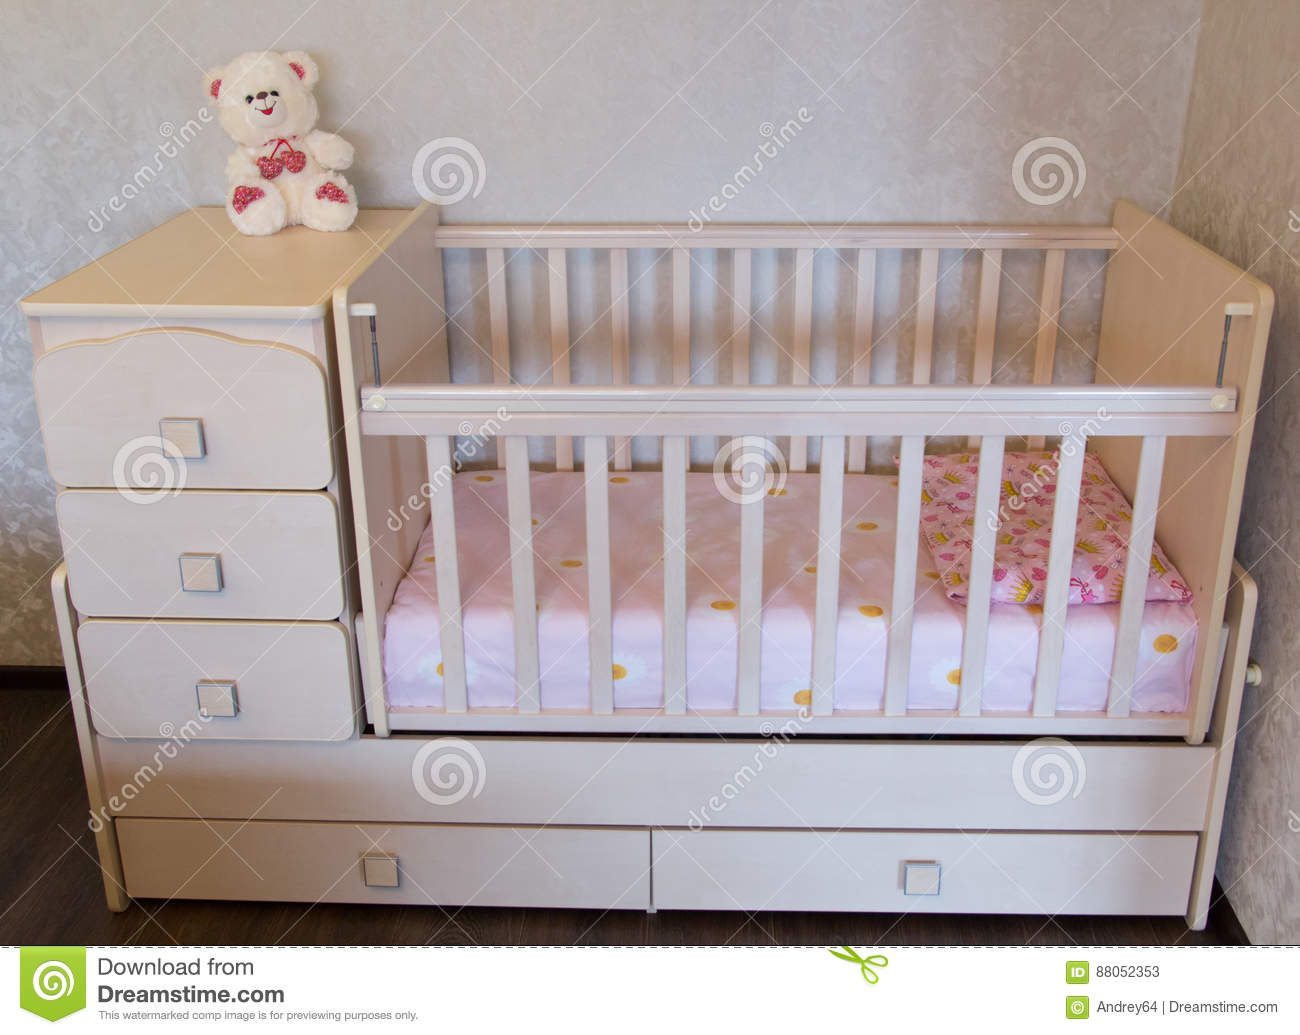 Baby crib. Bed for child